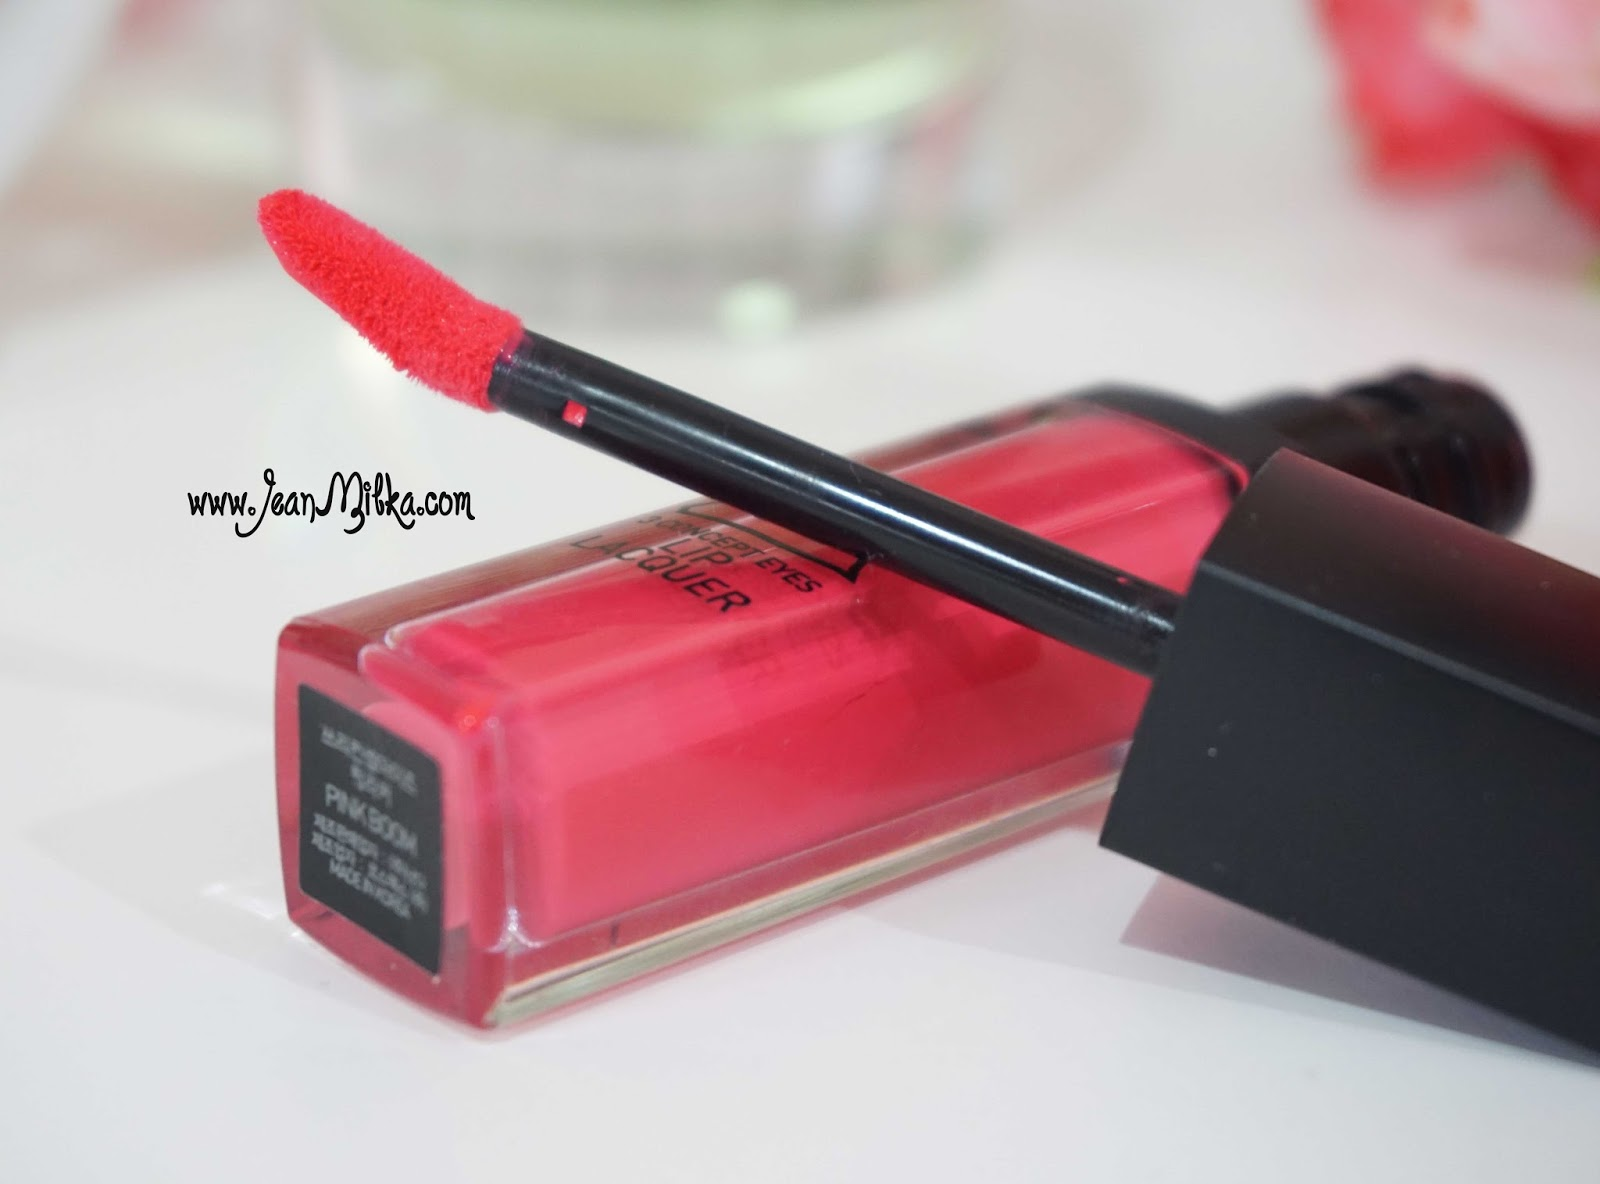 3ce lip lacquer pink boom xx orange swatch